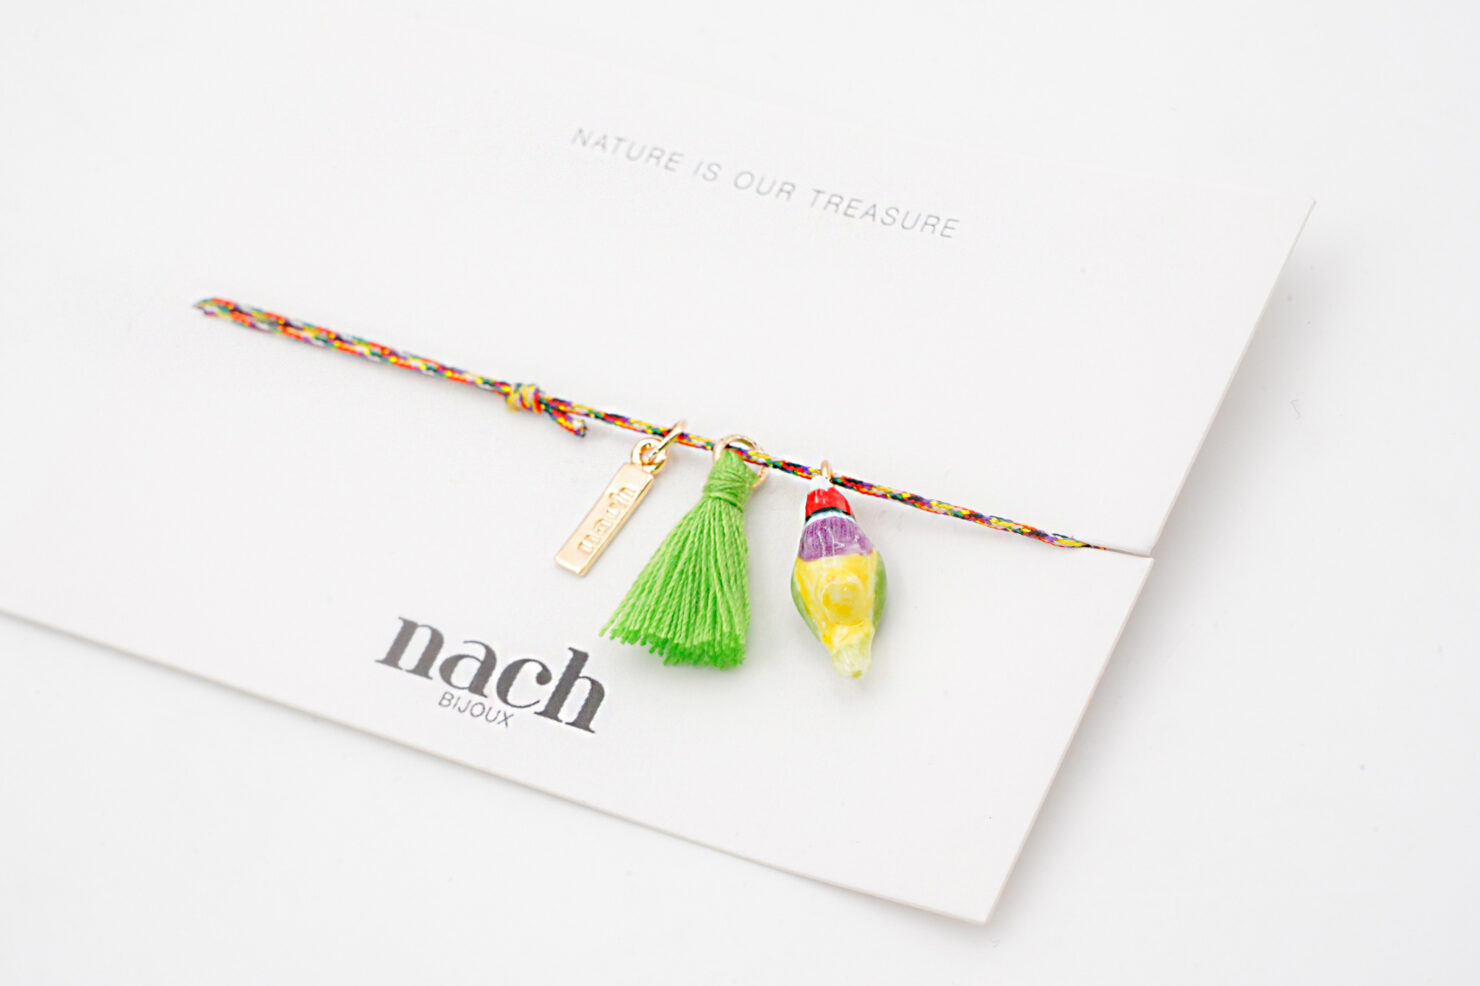 GOULDIAN FINCH BIRD MOULTICOLOR CHARM'S – NACH